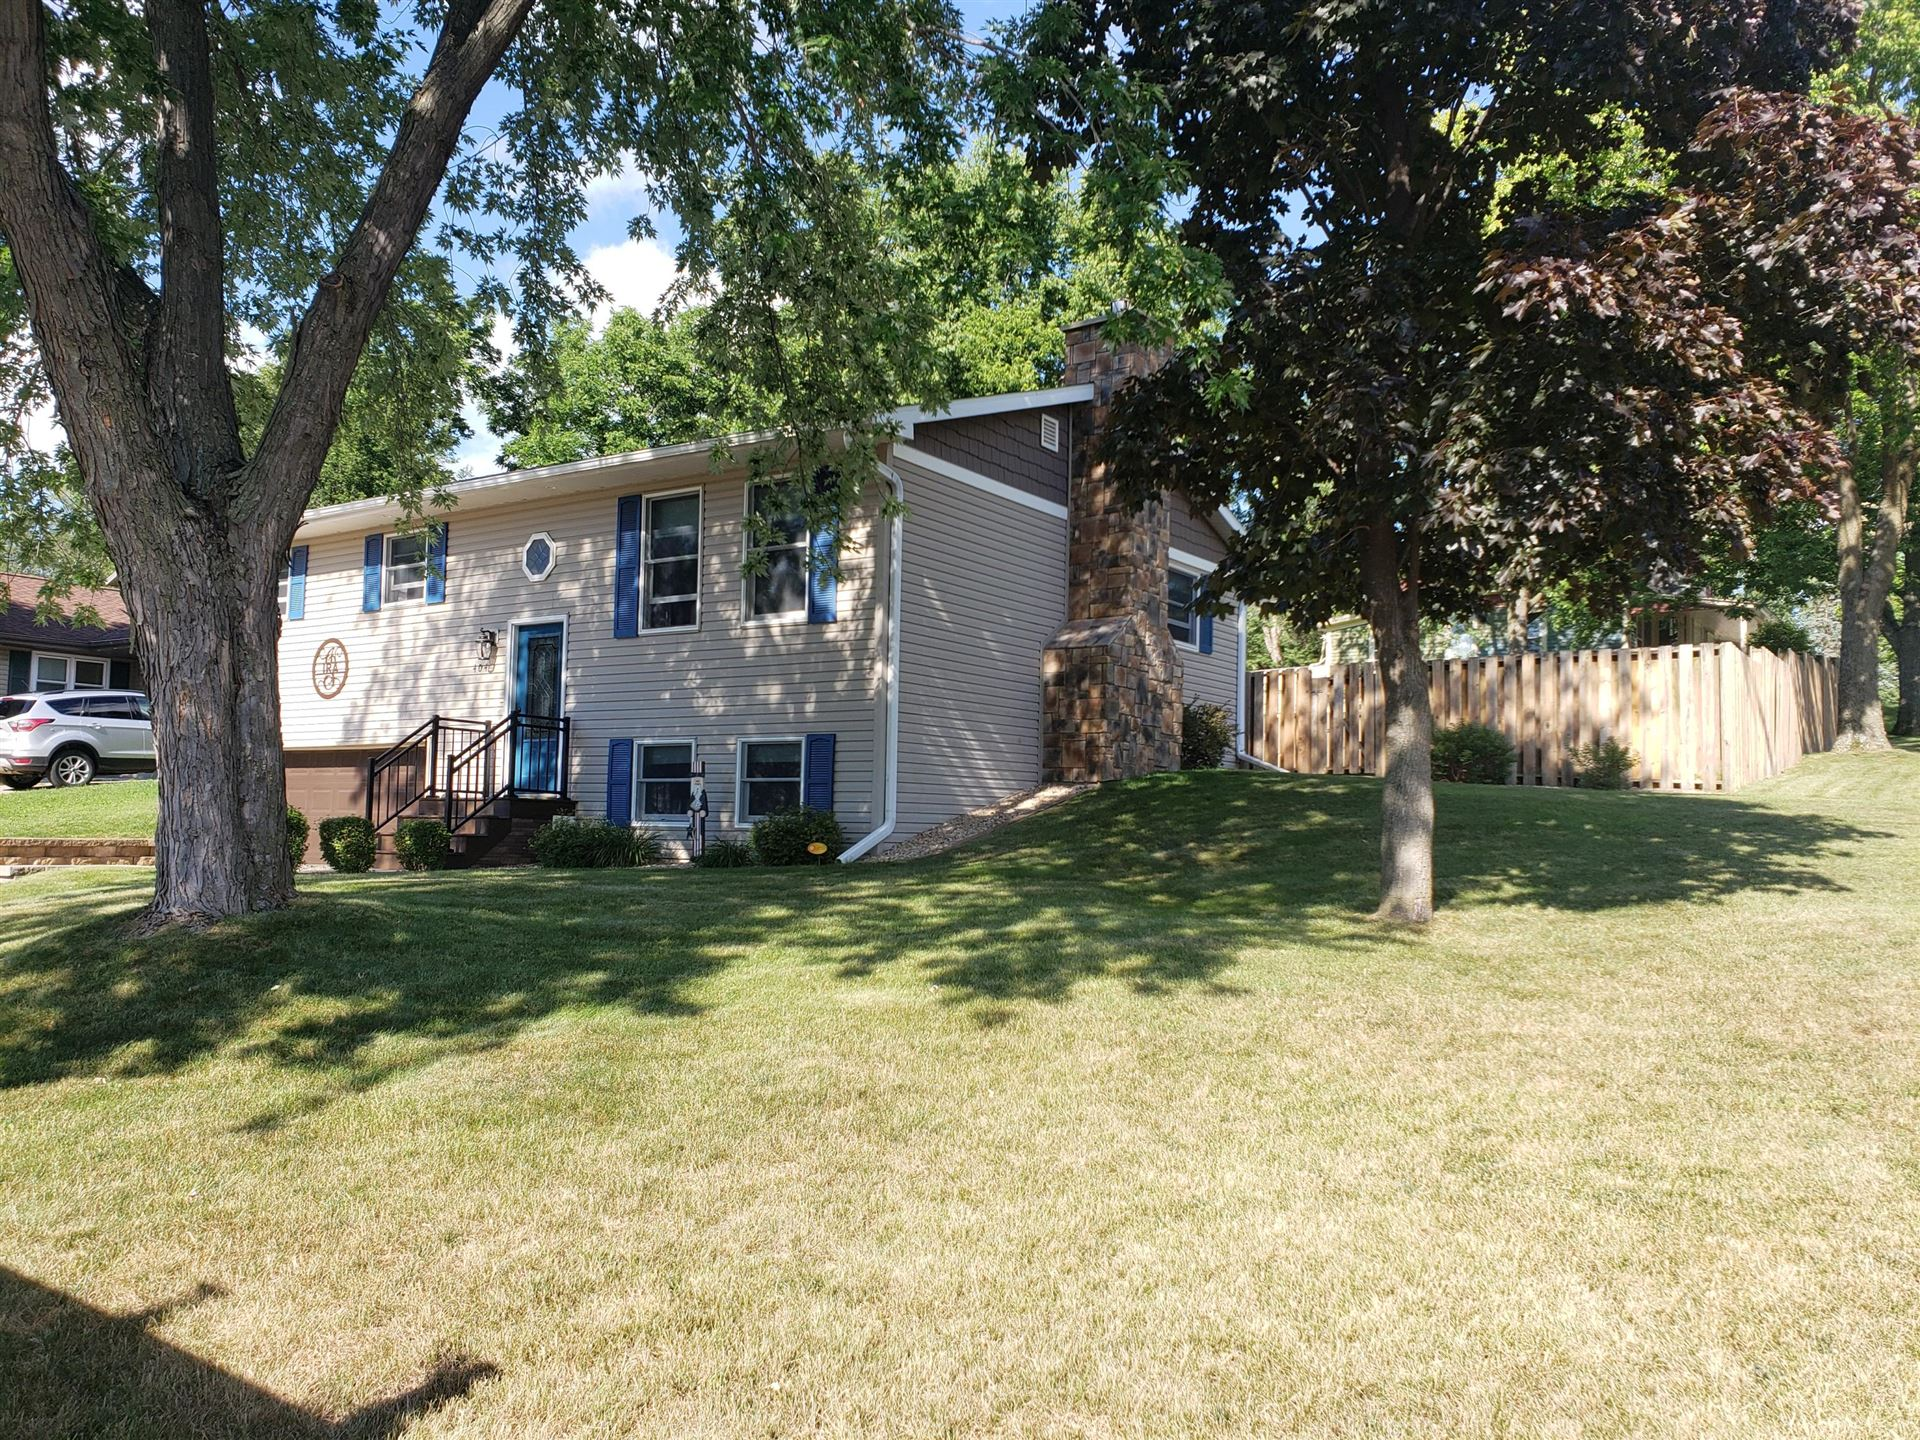 404 7TH AVE N, Onalaska, WI 54650 - MLS#: 1700586